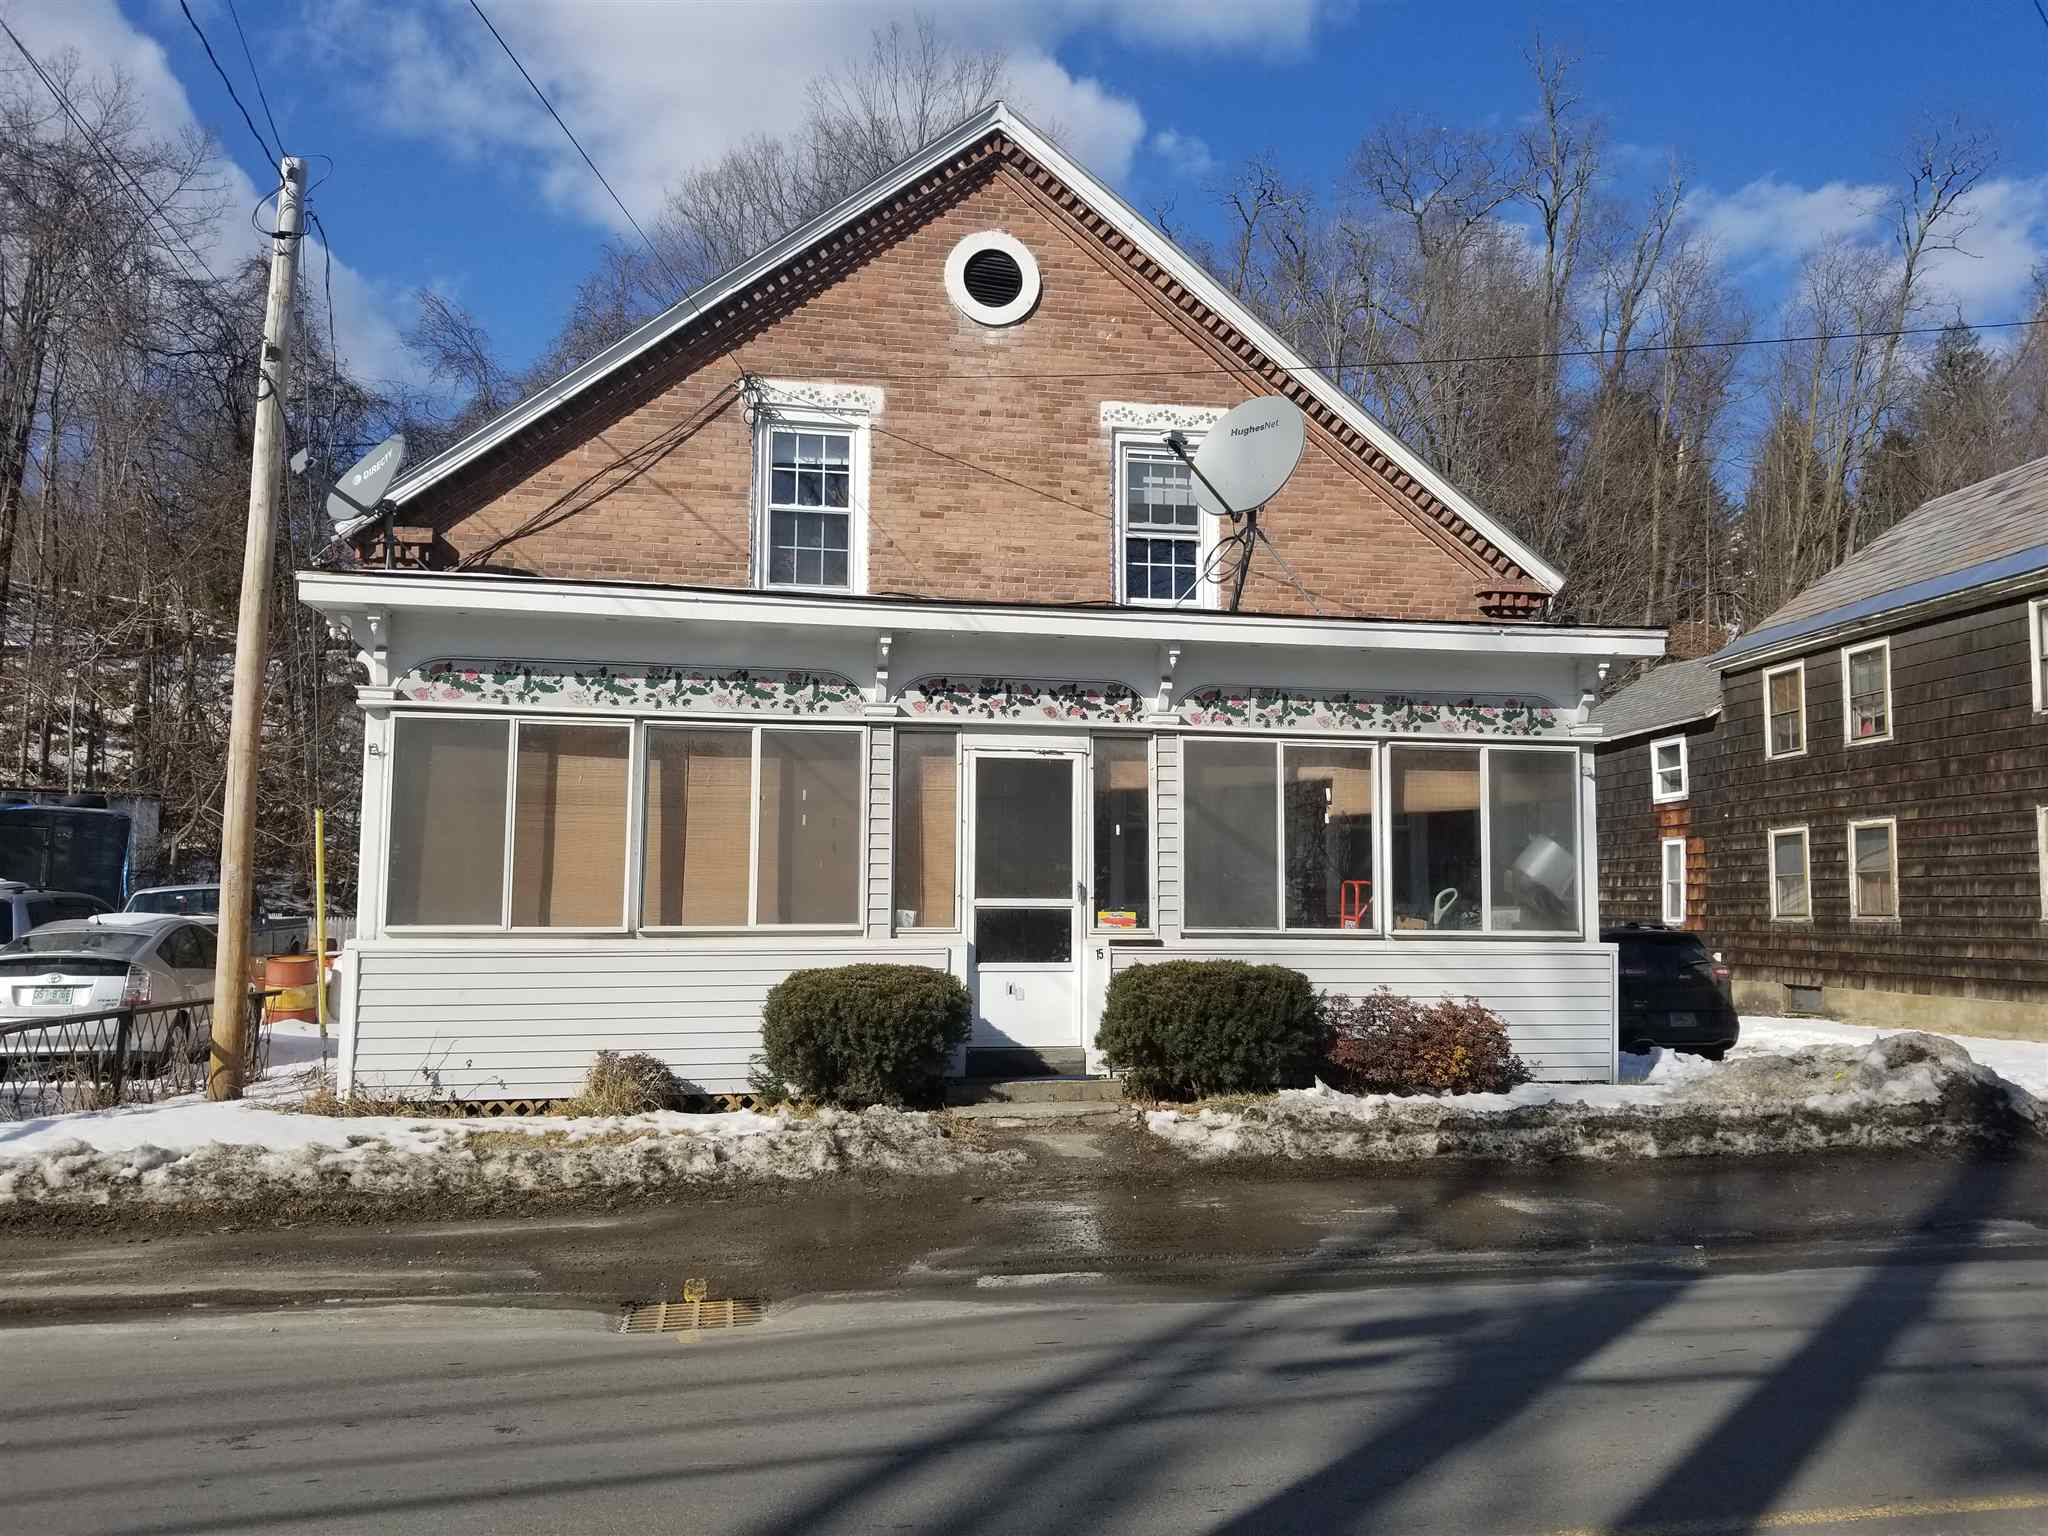 MLS 4794587: 15 Canal Street, Hinsdale NH